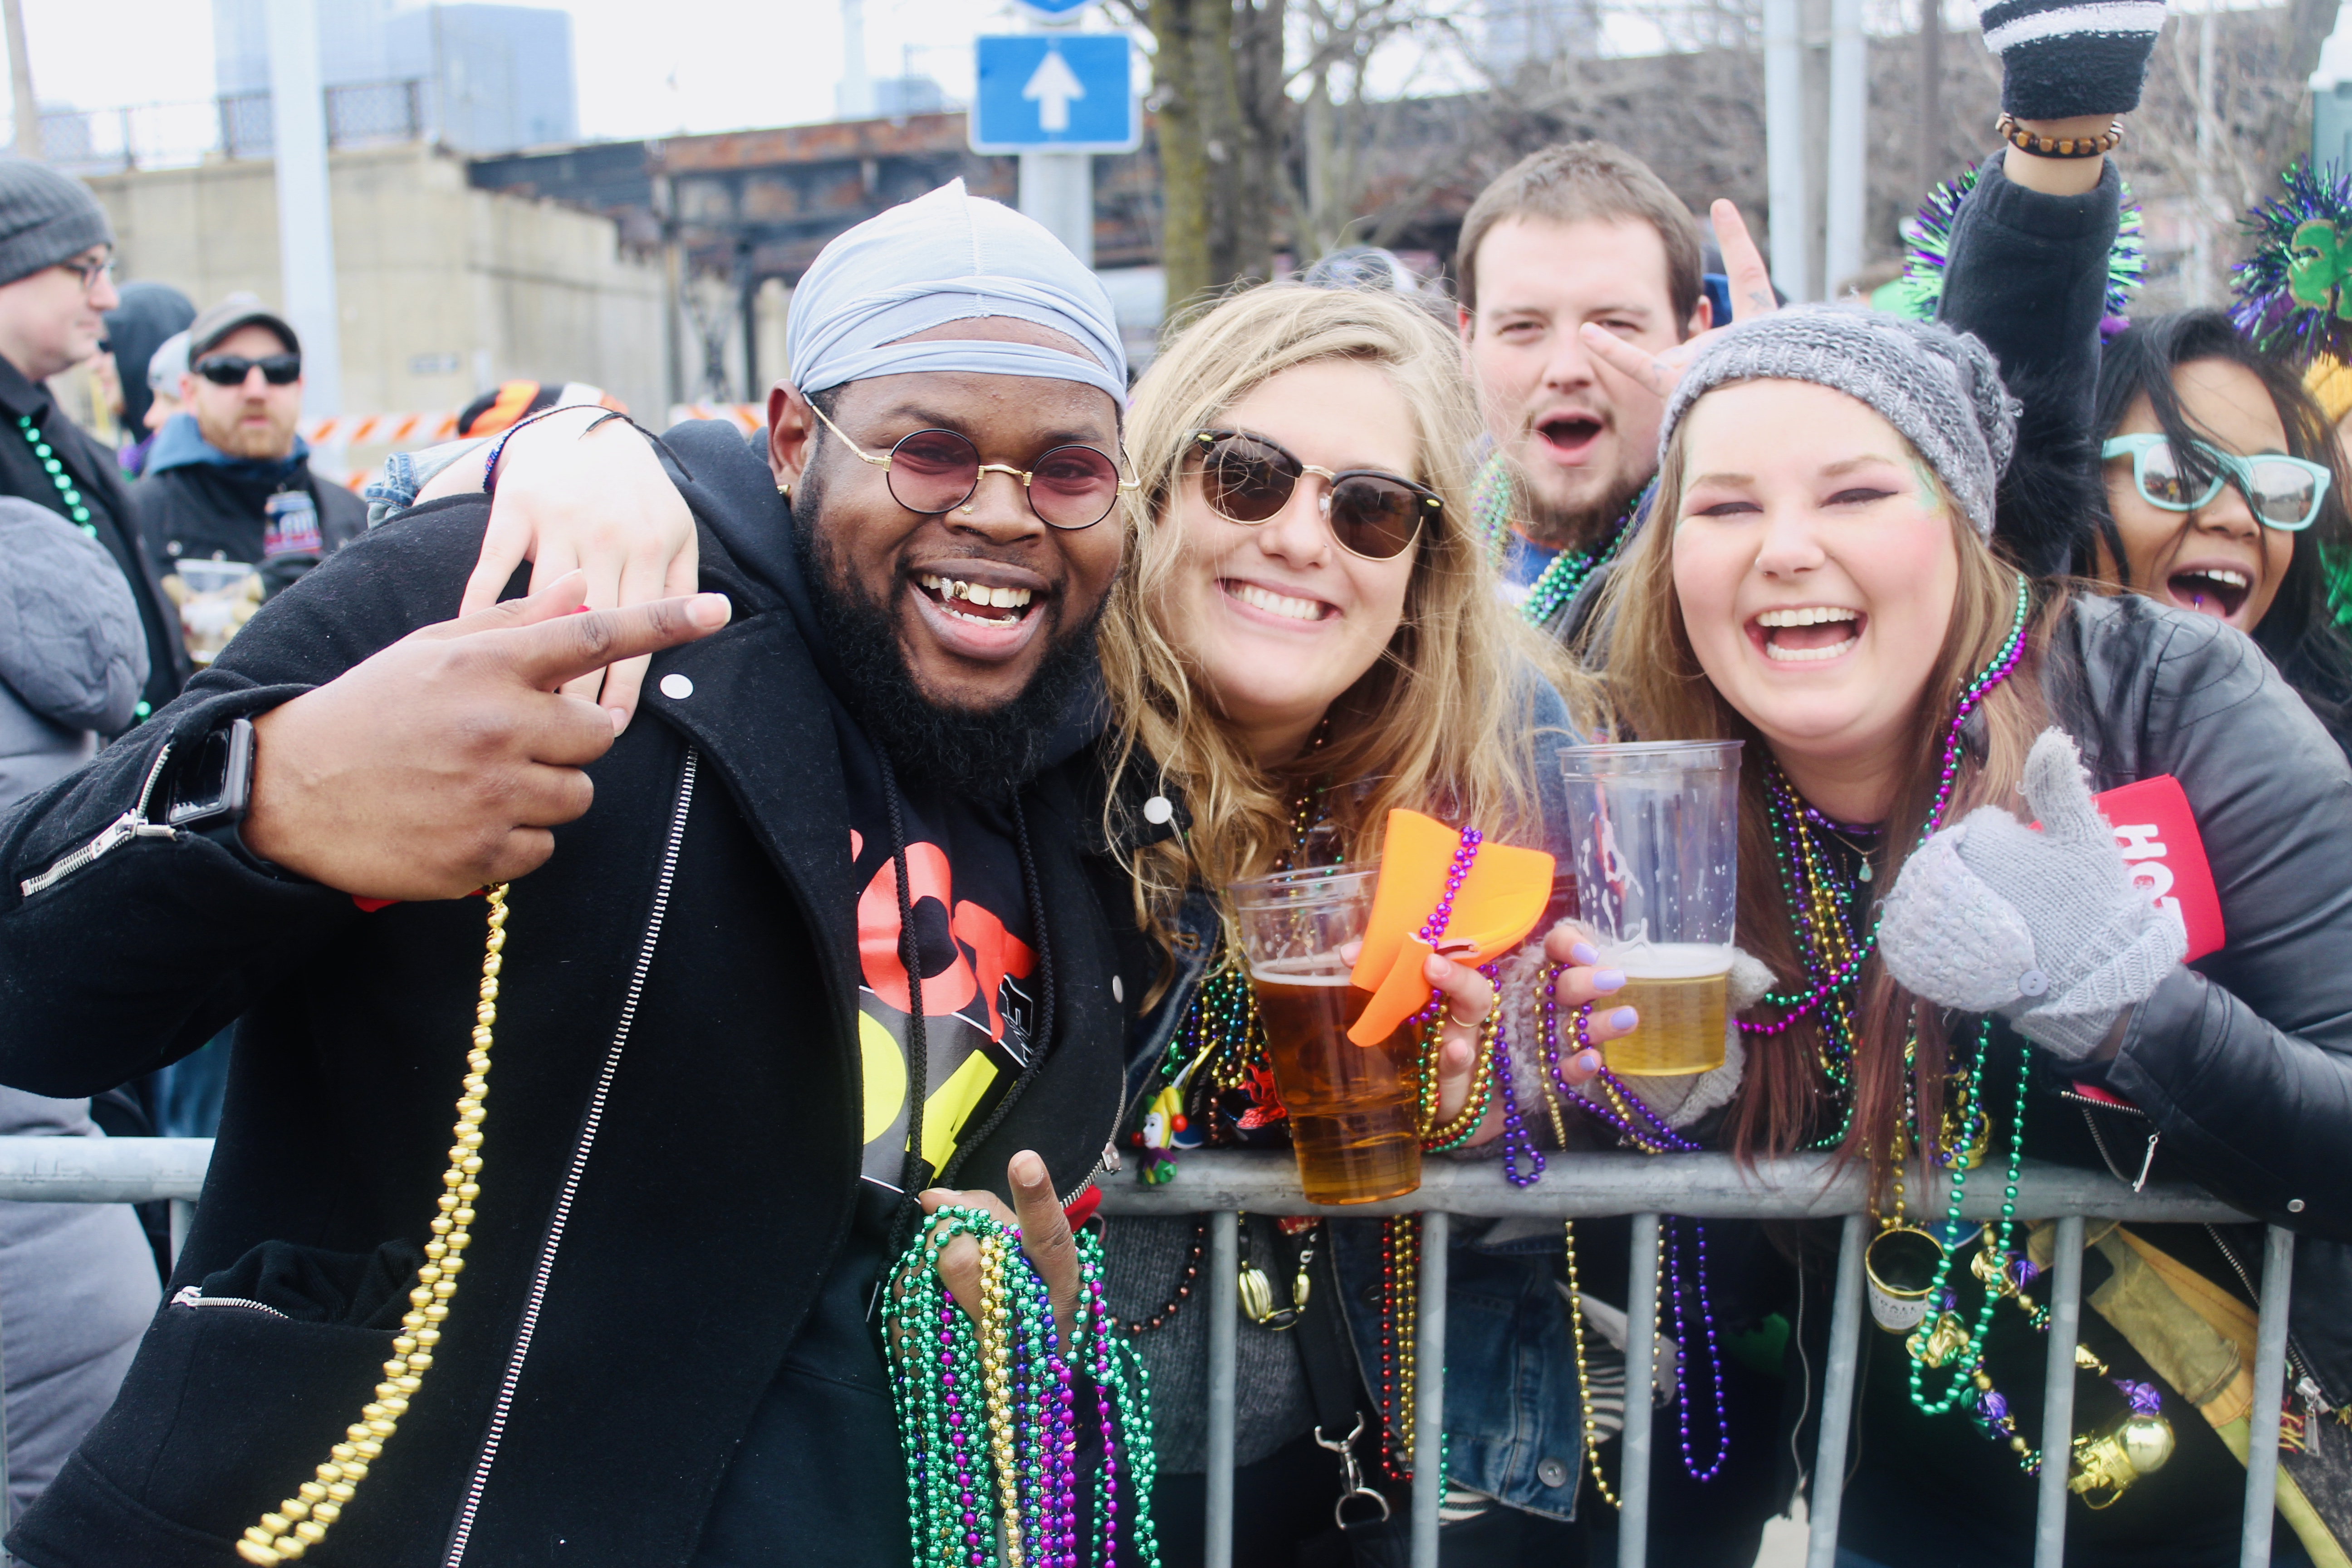 Mardi Gras 2019 (PHOTOS)